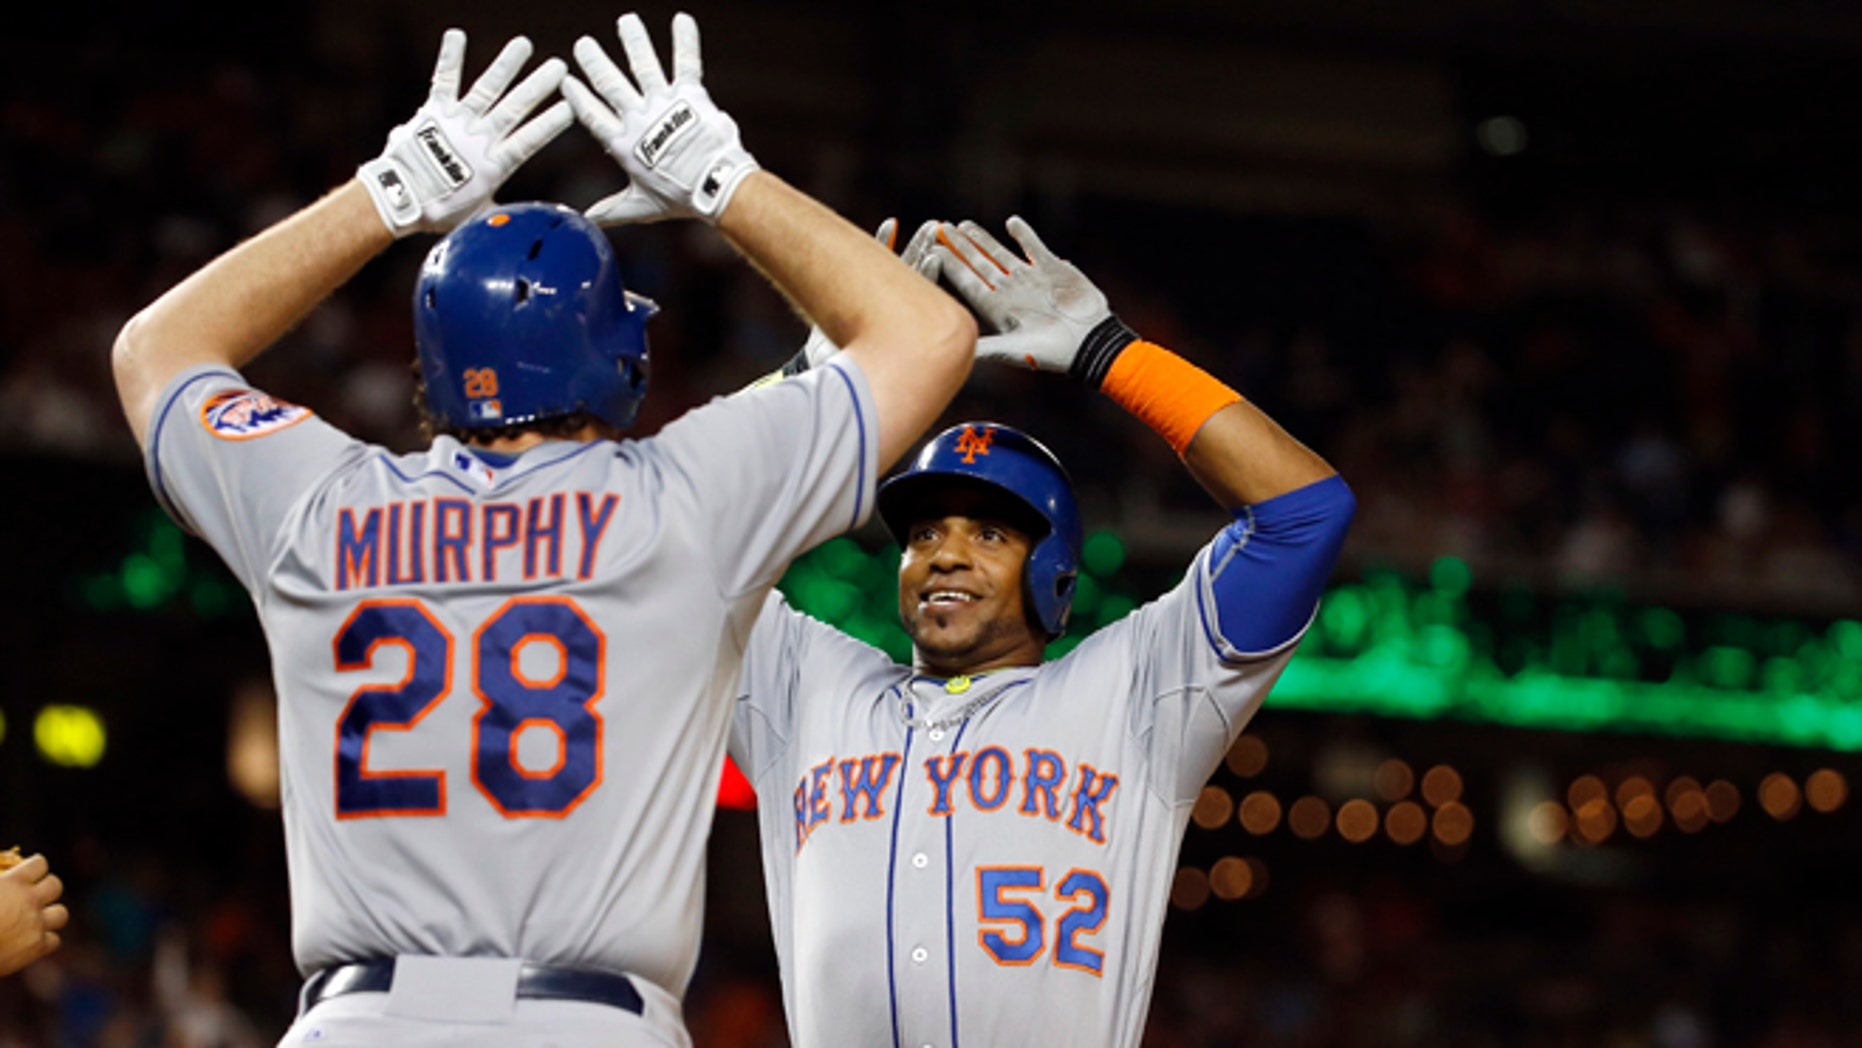 New York Mets' Daniel Murphy celebrates with Yoenis Cespedes (52) after Cespedes' two-run home run during the eighth inning of a baseball game against the Washington Nationals at Nationals Park, Wednesday, Sept. 9, 2015, in Washington. The Mets won 5-3. (AP Photo/Alex Brandon)